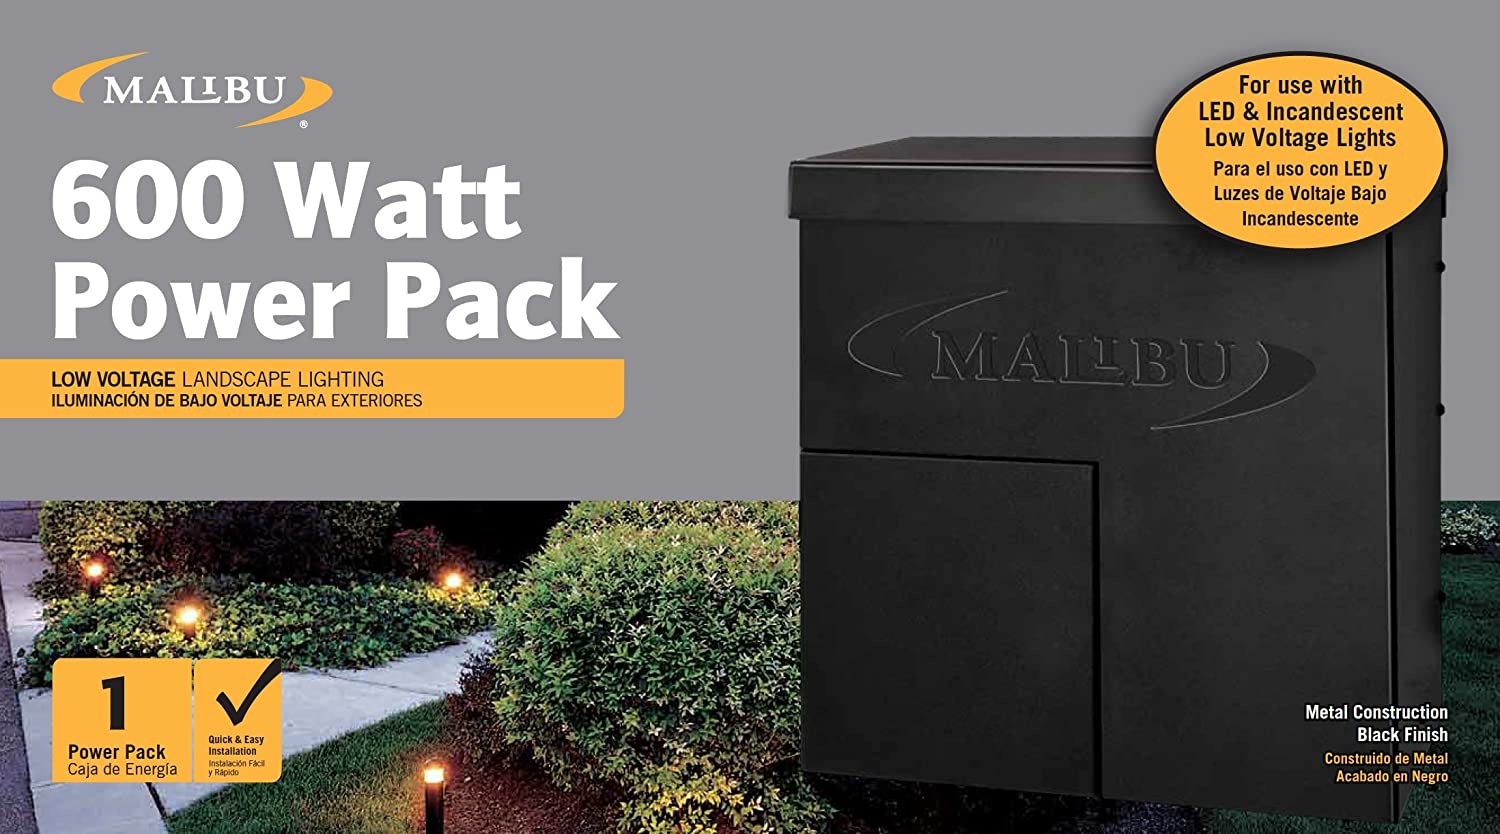 Malibu 600 Watt Power Pack With Sensor Photo Cell And Weather Shield Lighting Transformer Wiring Diagram For Low Voltage Landscape Spotlight Outdoor 120v Input 12v Output